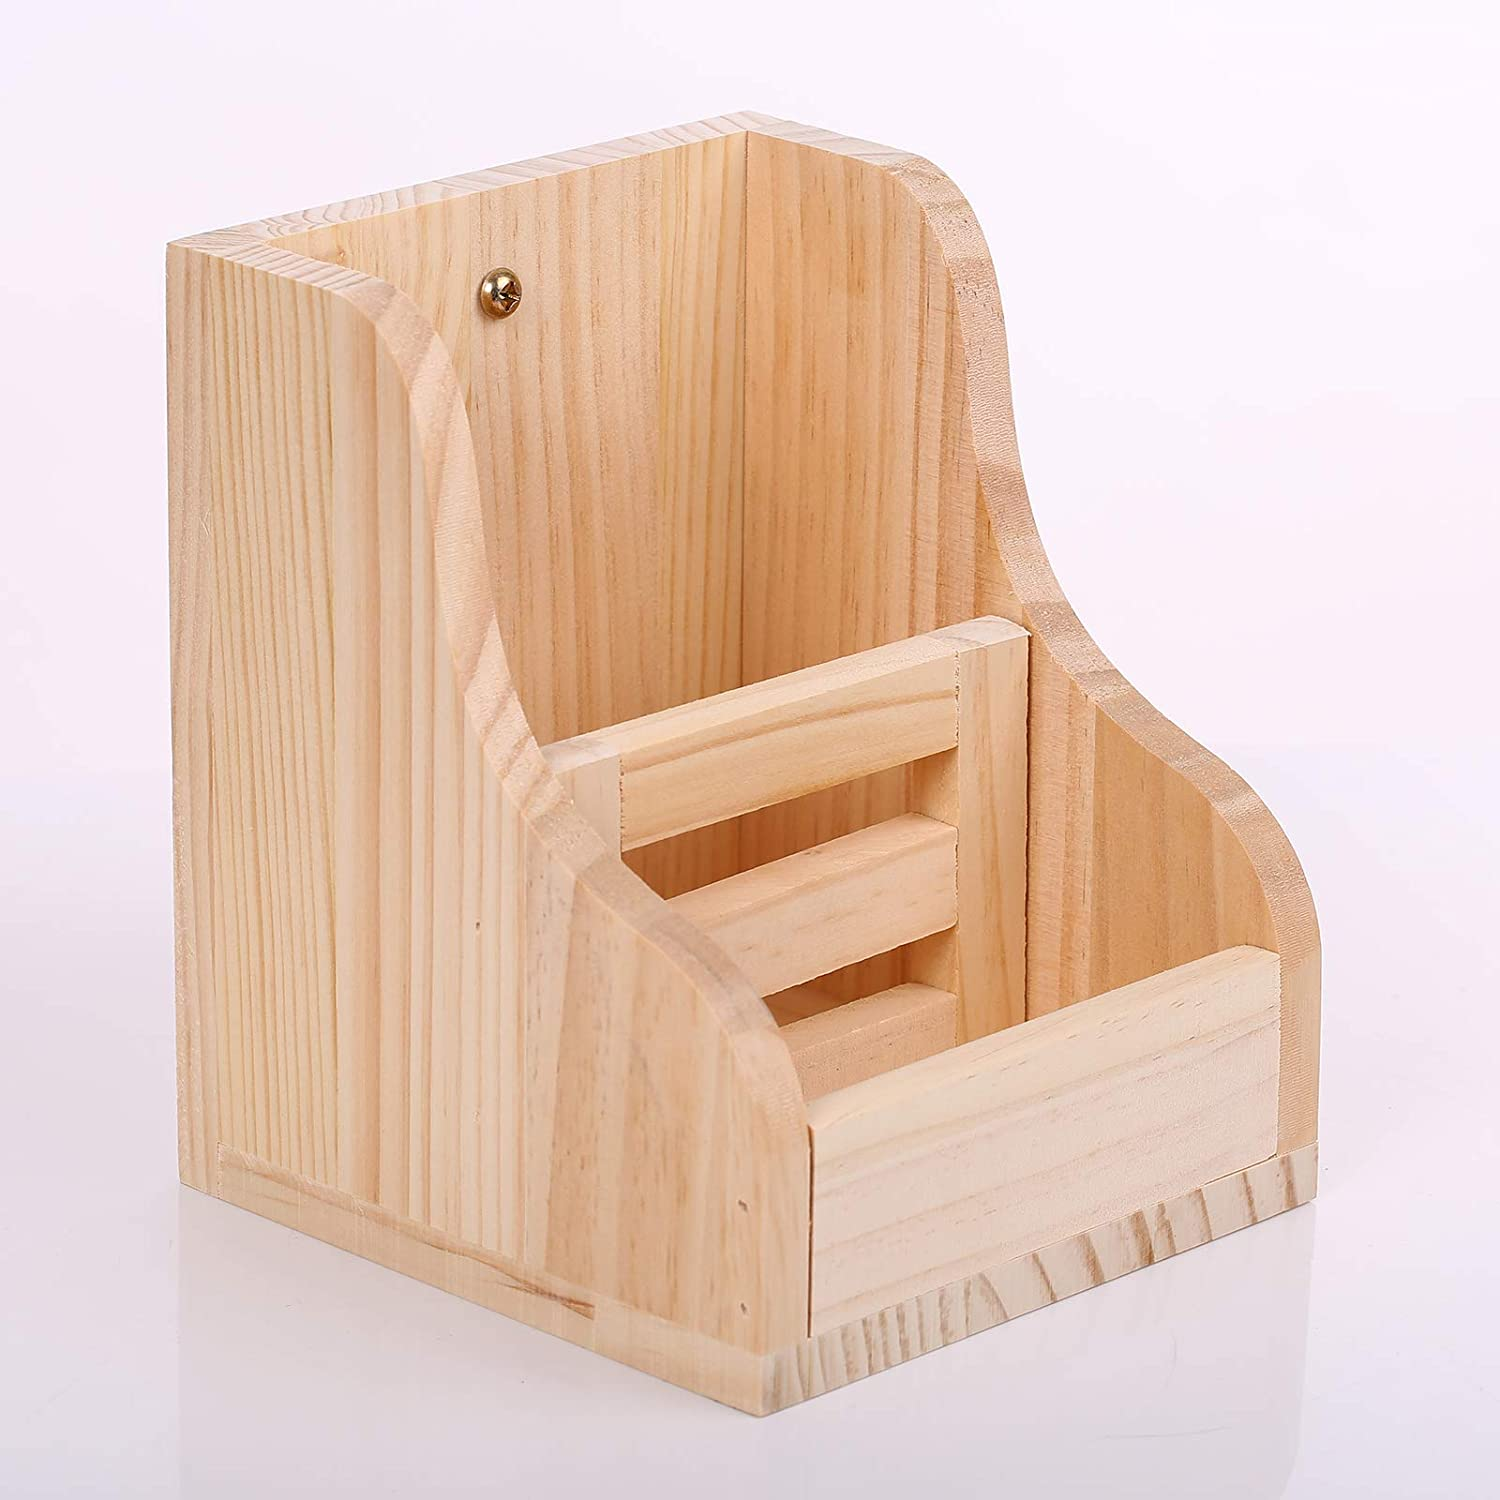 ZARYIEEO Rabbit Hay Feeder, Wooden Grass & Food 2 in 1 Double Use Dispenser, Wood Rack Manger Holder for Bunny Guinea Pig Chinchilla, Less Wasted Indoor Bowl Small Animal Pet-self Feeding Bin